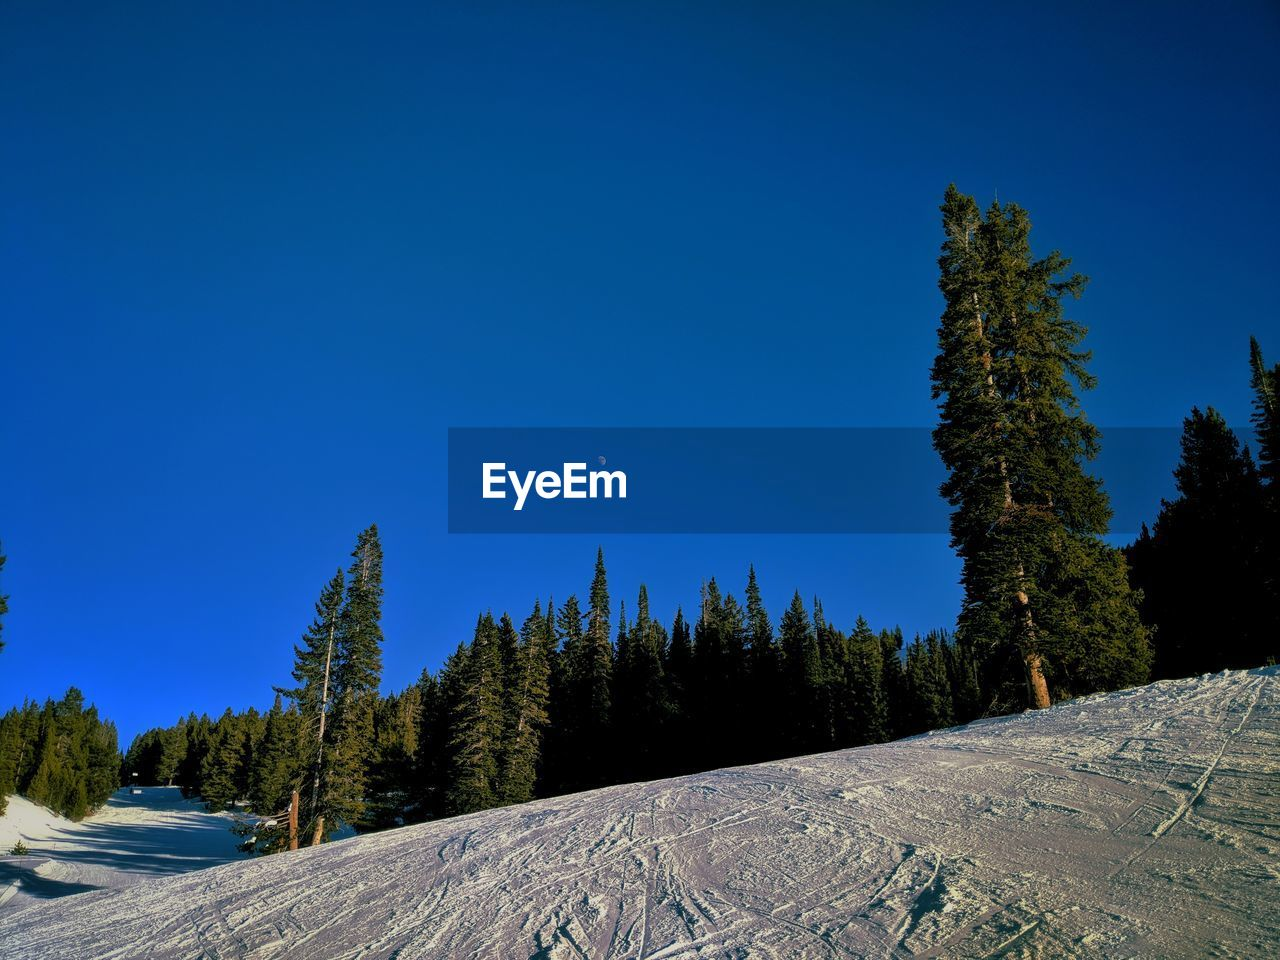 sky, tree, blue, plant, clear sky, scenics - nature, beauty in nature, tranquility, tranquil scene, snow, copy space, non-urban scene, nature, no people, cold temperature, winter, growth, land, environment, mountain, pine tree, coniferous tree, snowcapped mountain